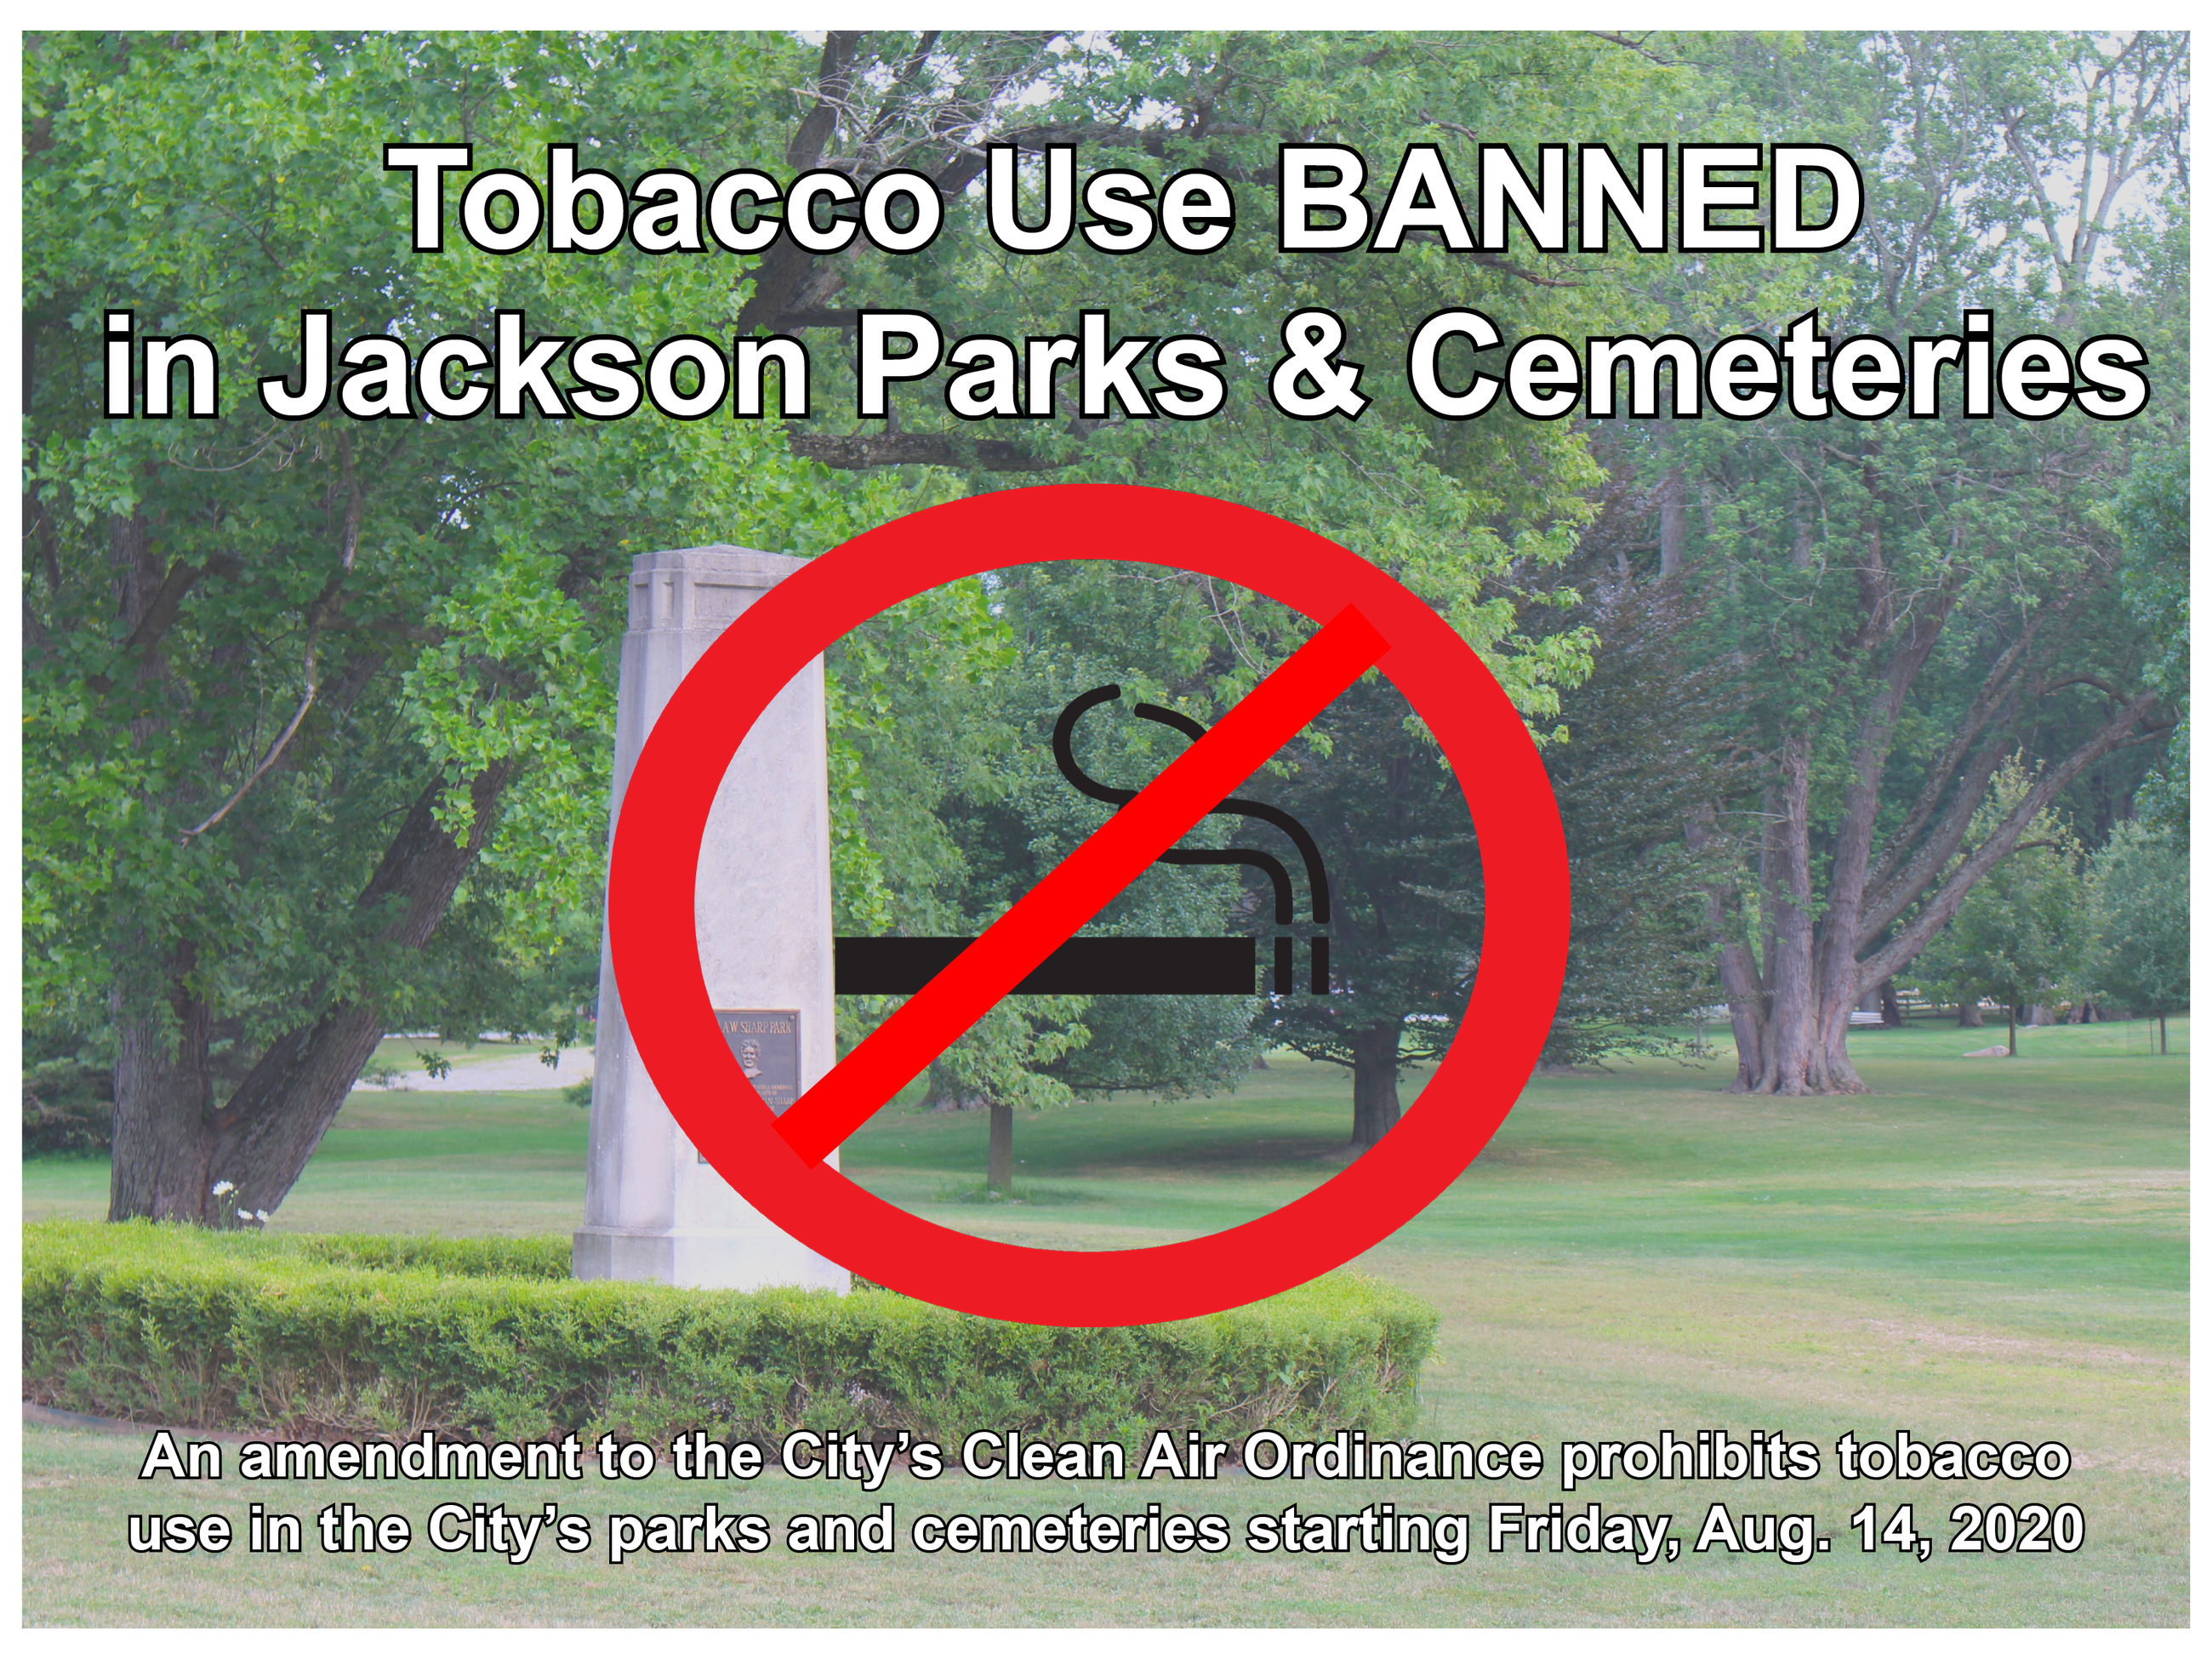 No smoking in Jackson parks graphic